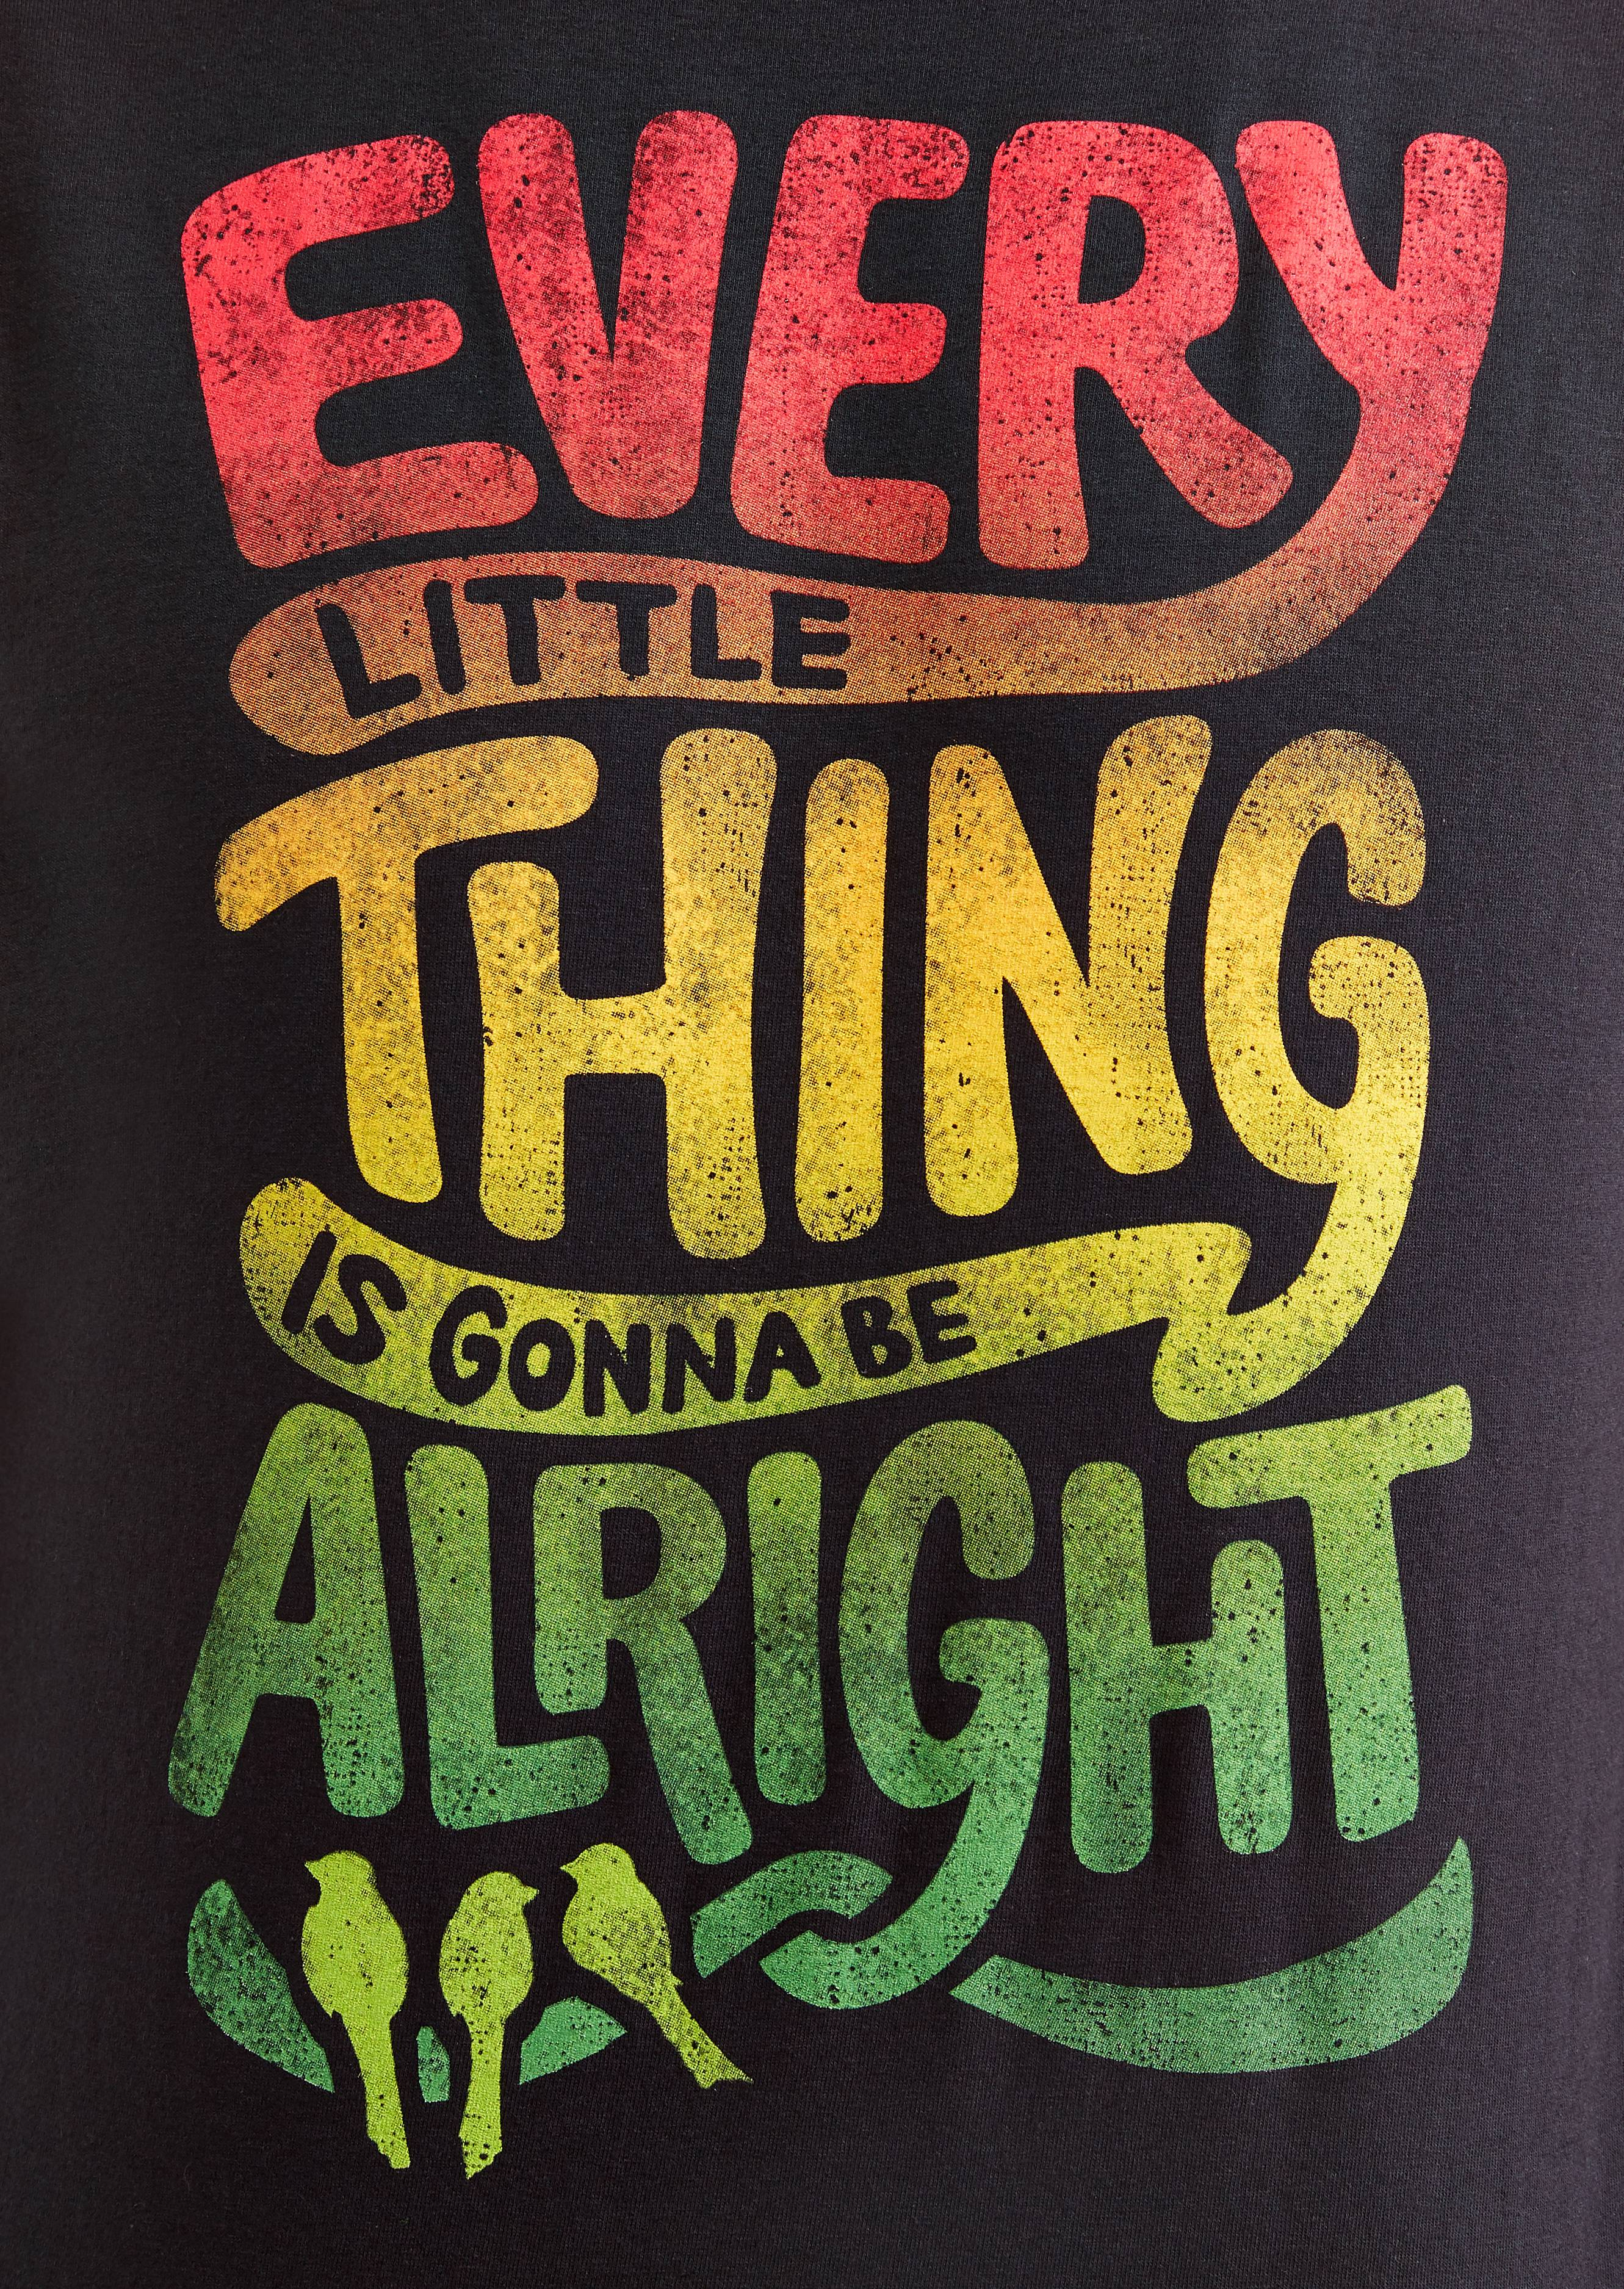 Tee Thing Little Men's Graphic Every rhdstQ